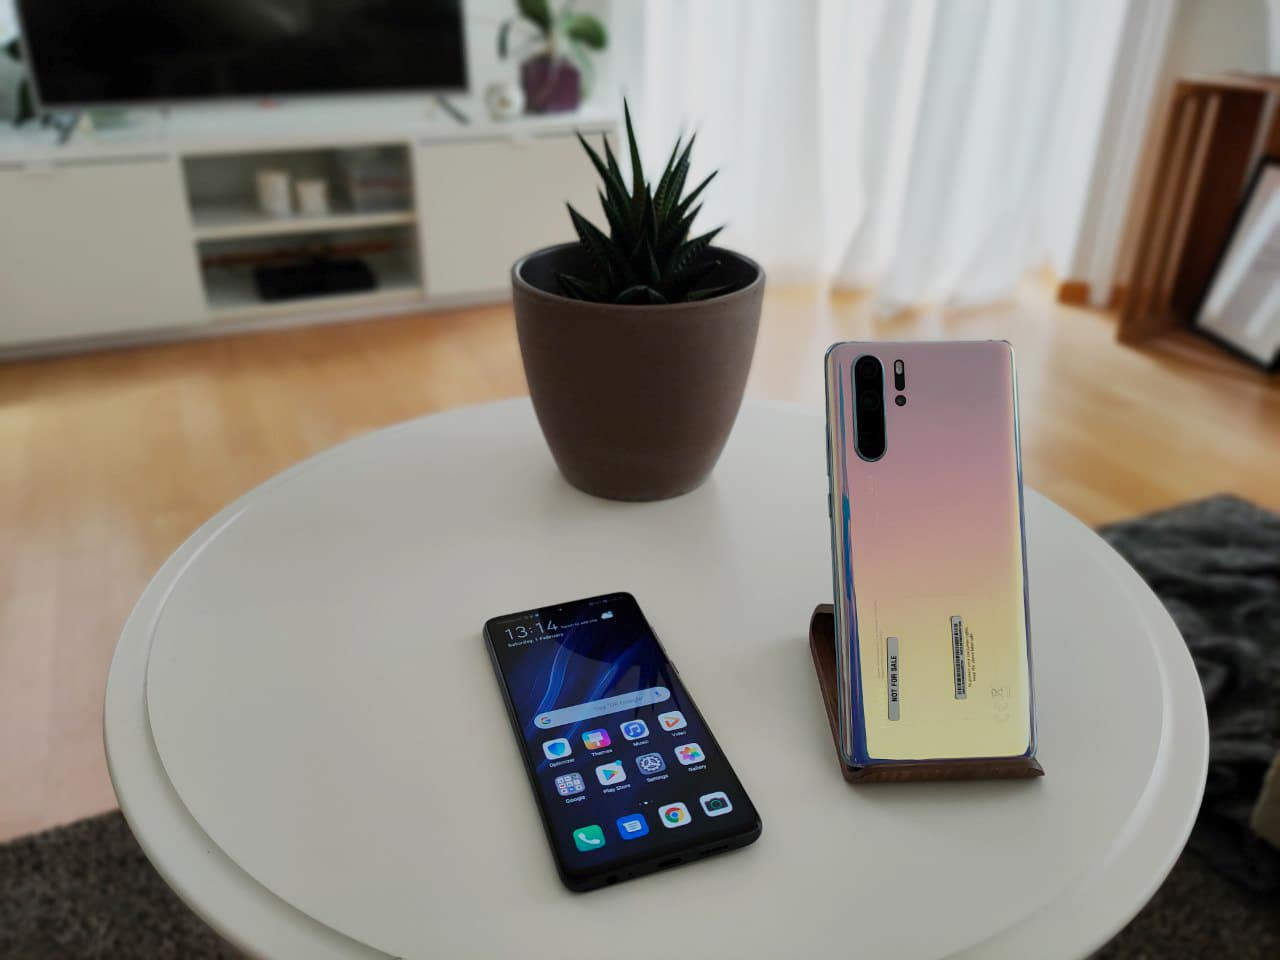 Huawei smartphones P30 Pro and P30